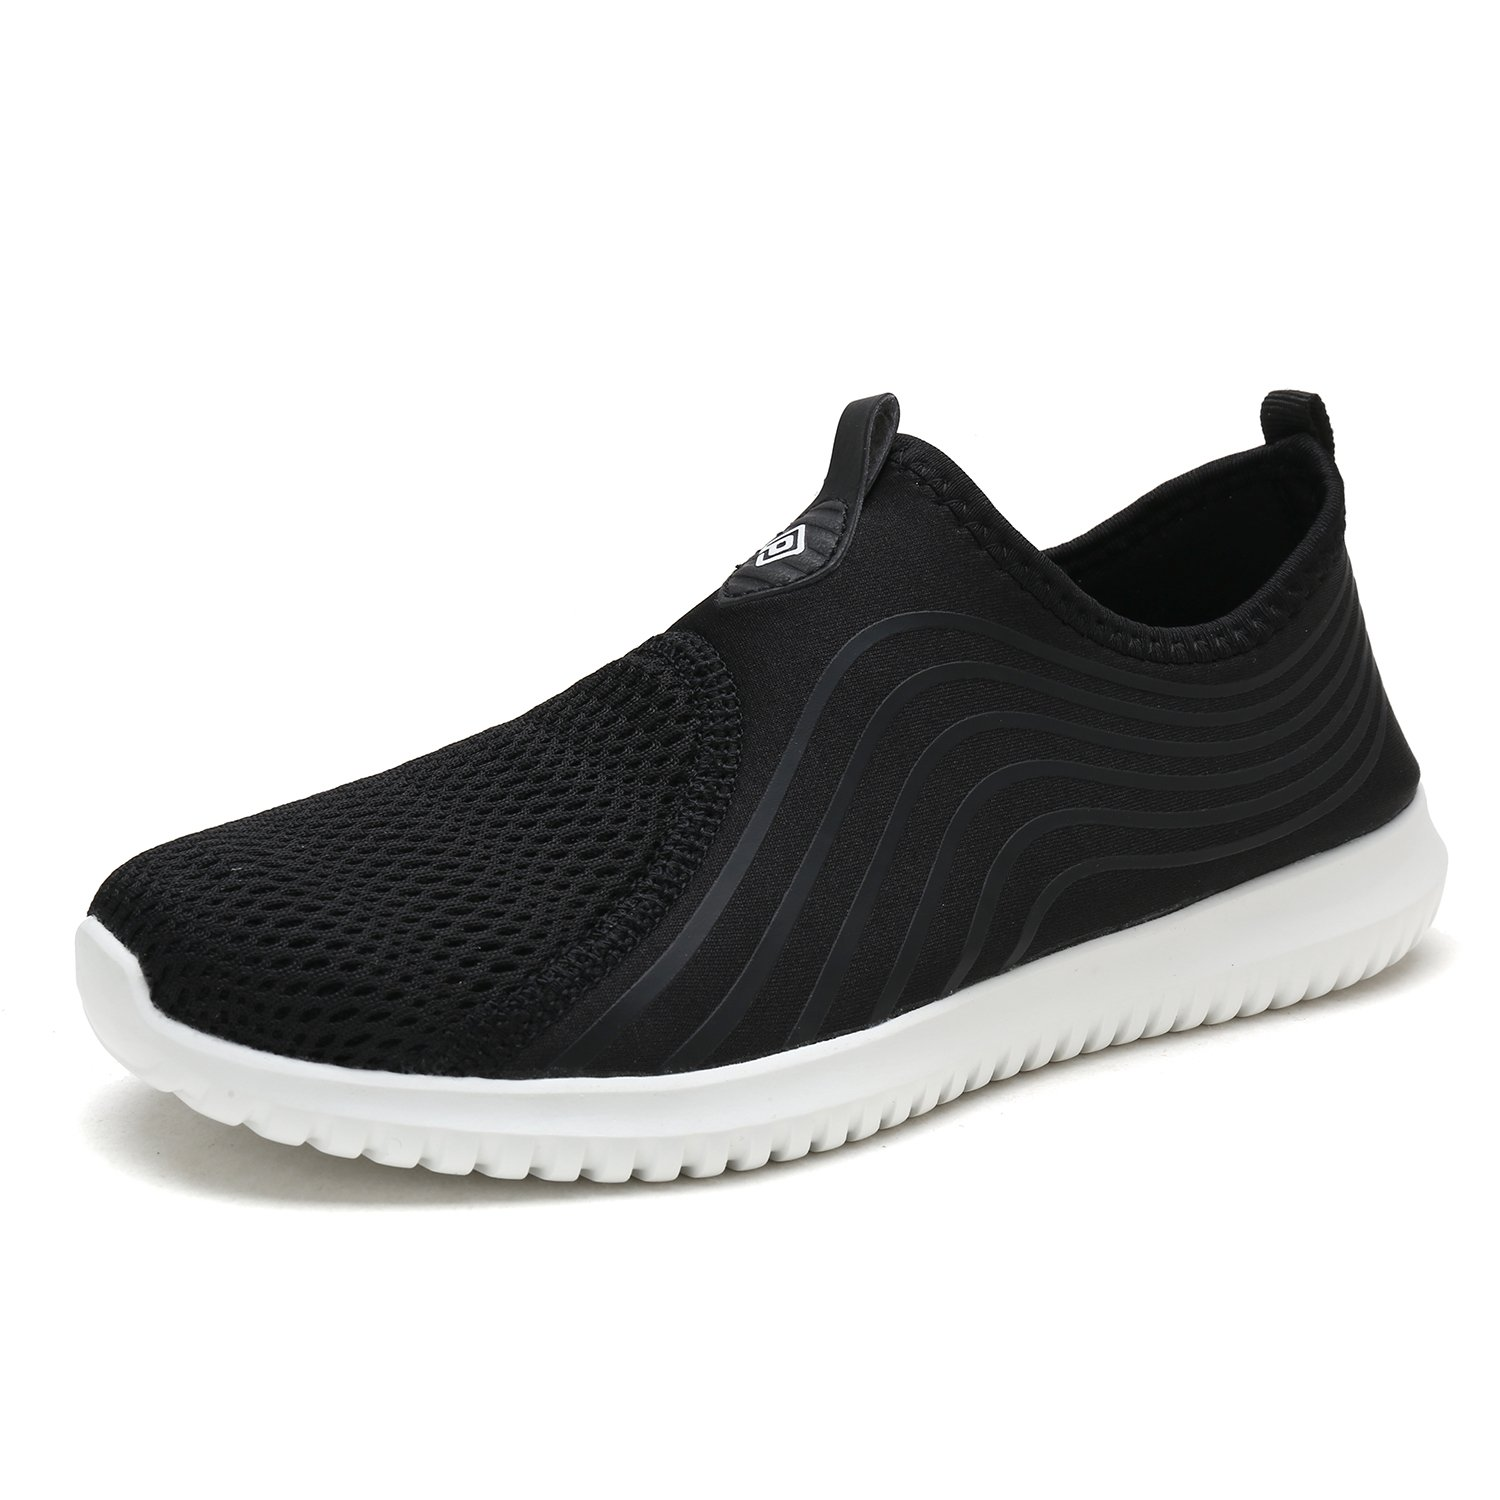 DREAM PAIRS Quick-Dry Water Sneakers Shoes Sports Walking Casual Sneakers Water for Women B07886YHDY 5 M US|Black/White 2d4e66